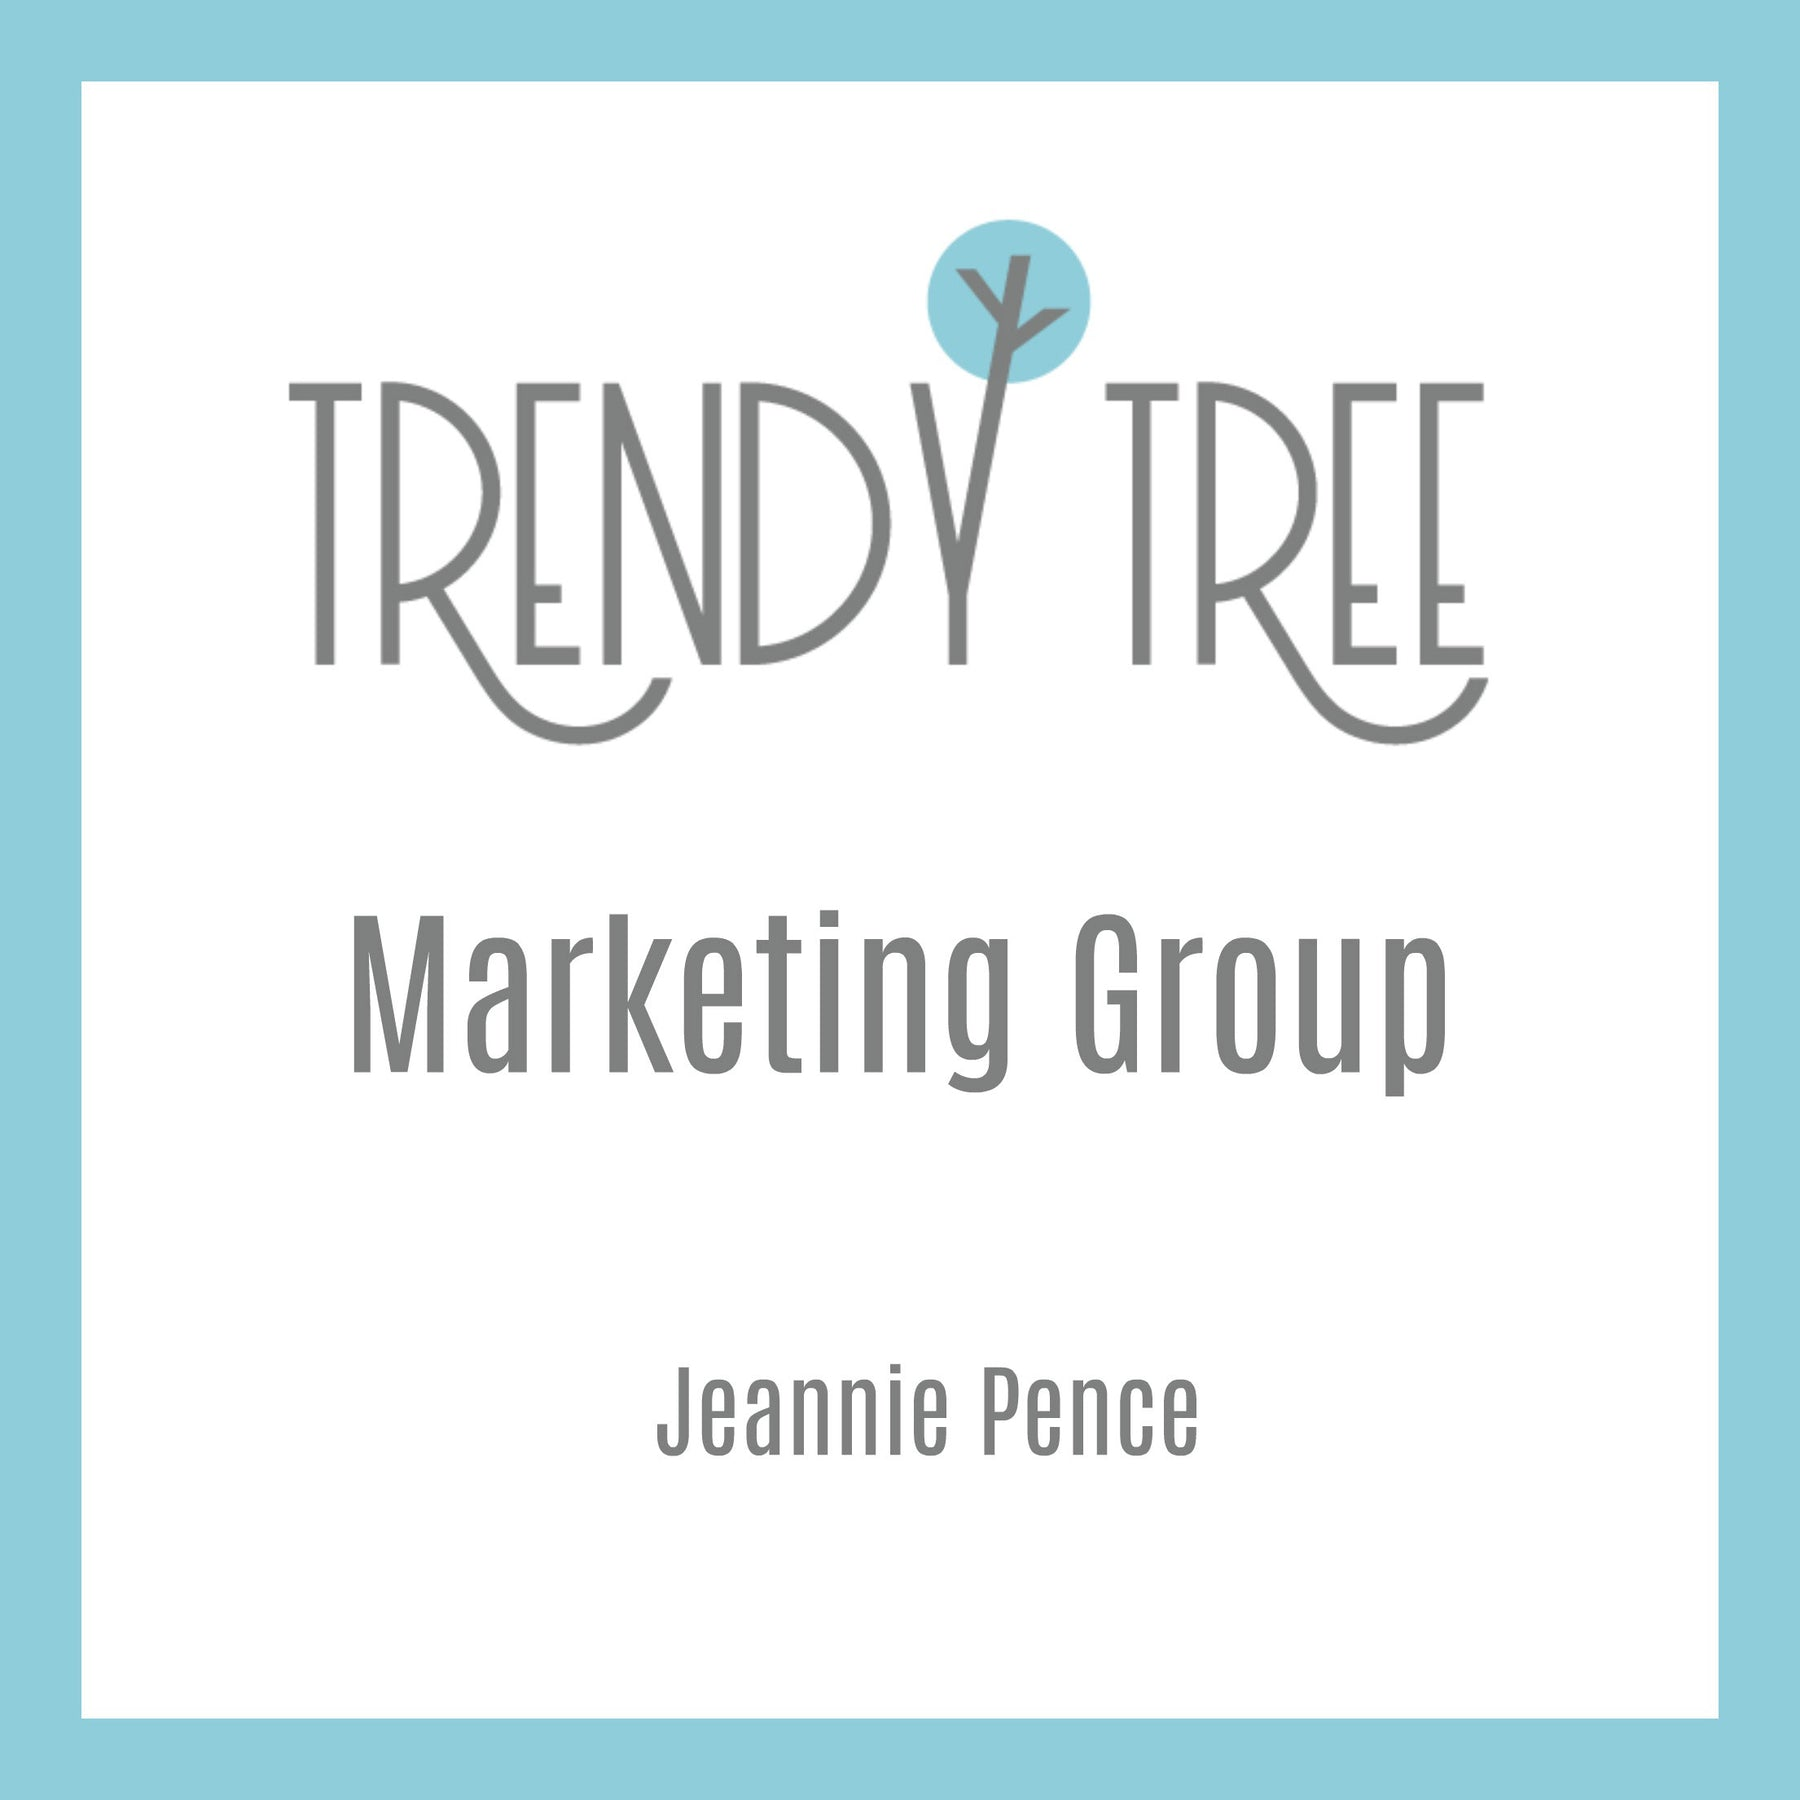 Wreaths & Centerpieces by Creators in the Trendy Tree Marketing Group February 2019